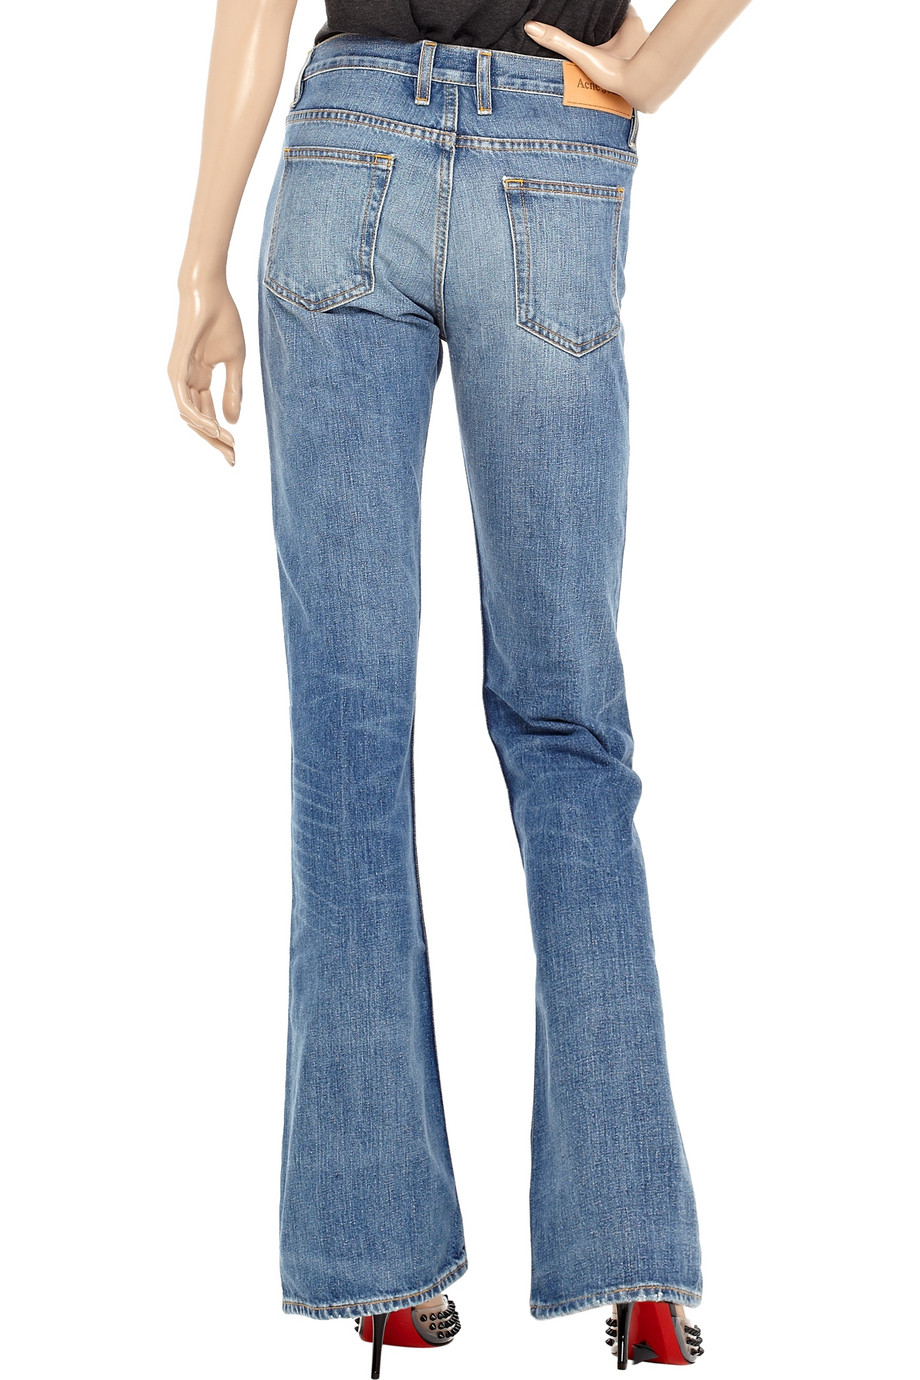 acne luv jeans